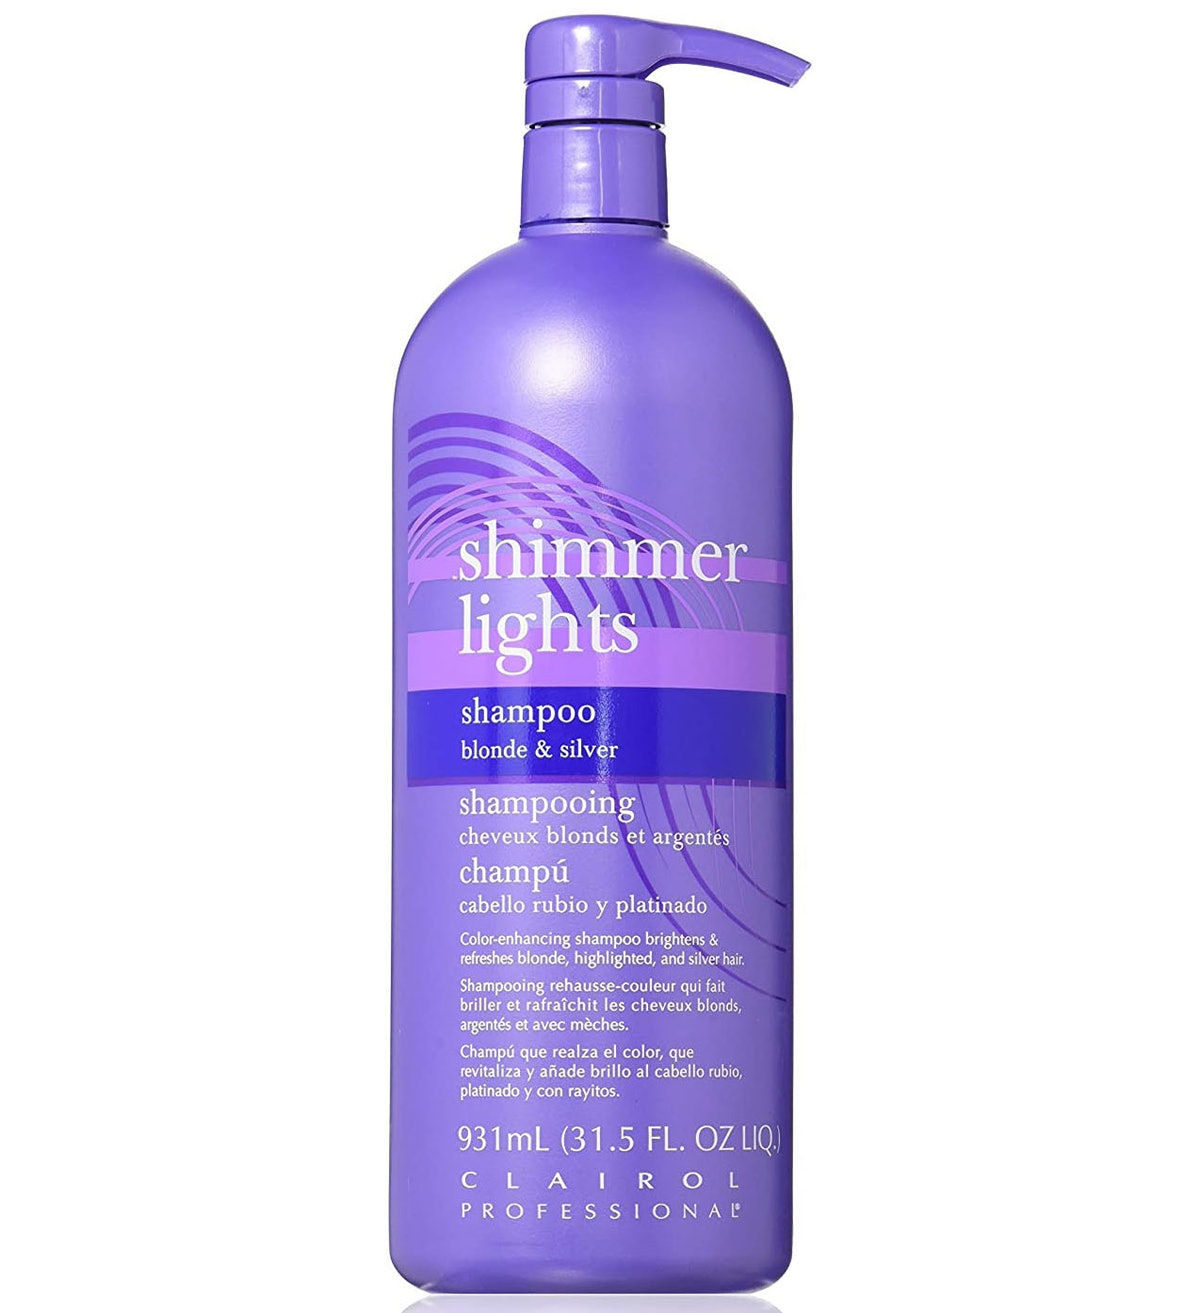 Clairol Shimmer Lights Shampoo for Blonde and Silver Hair